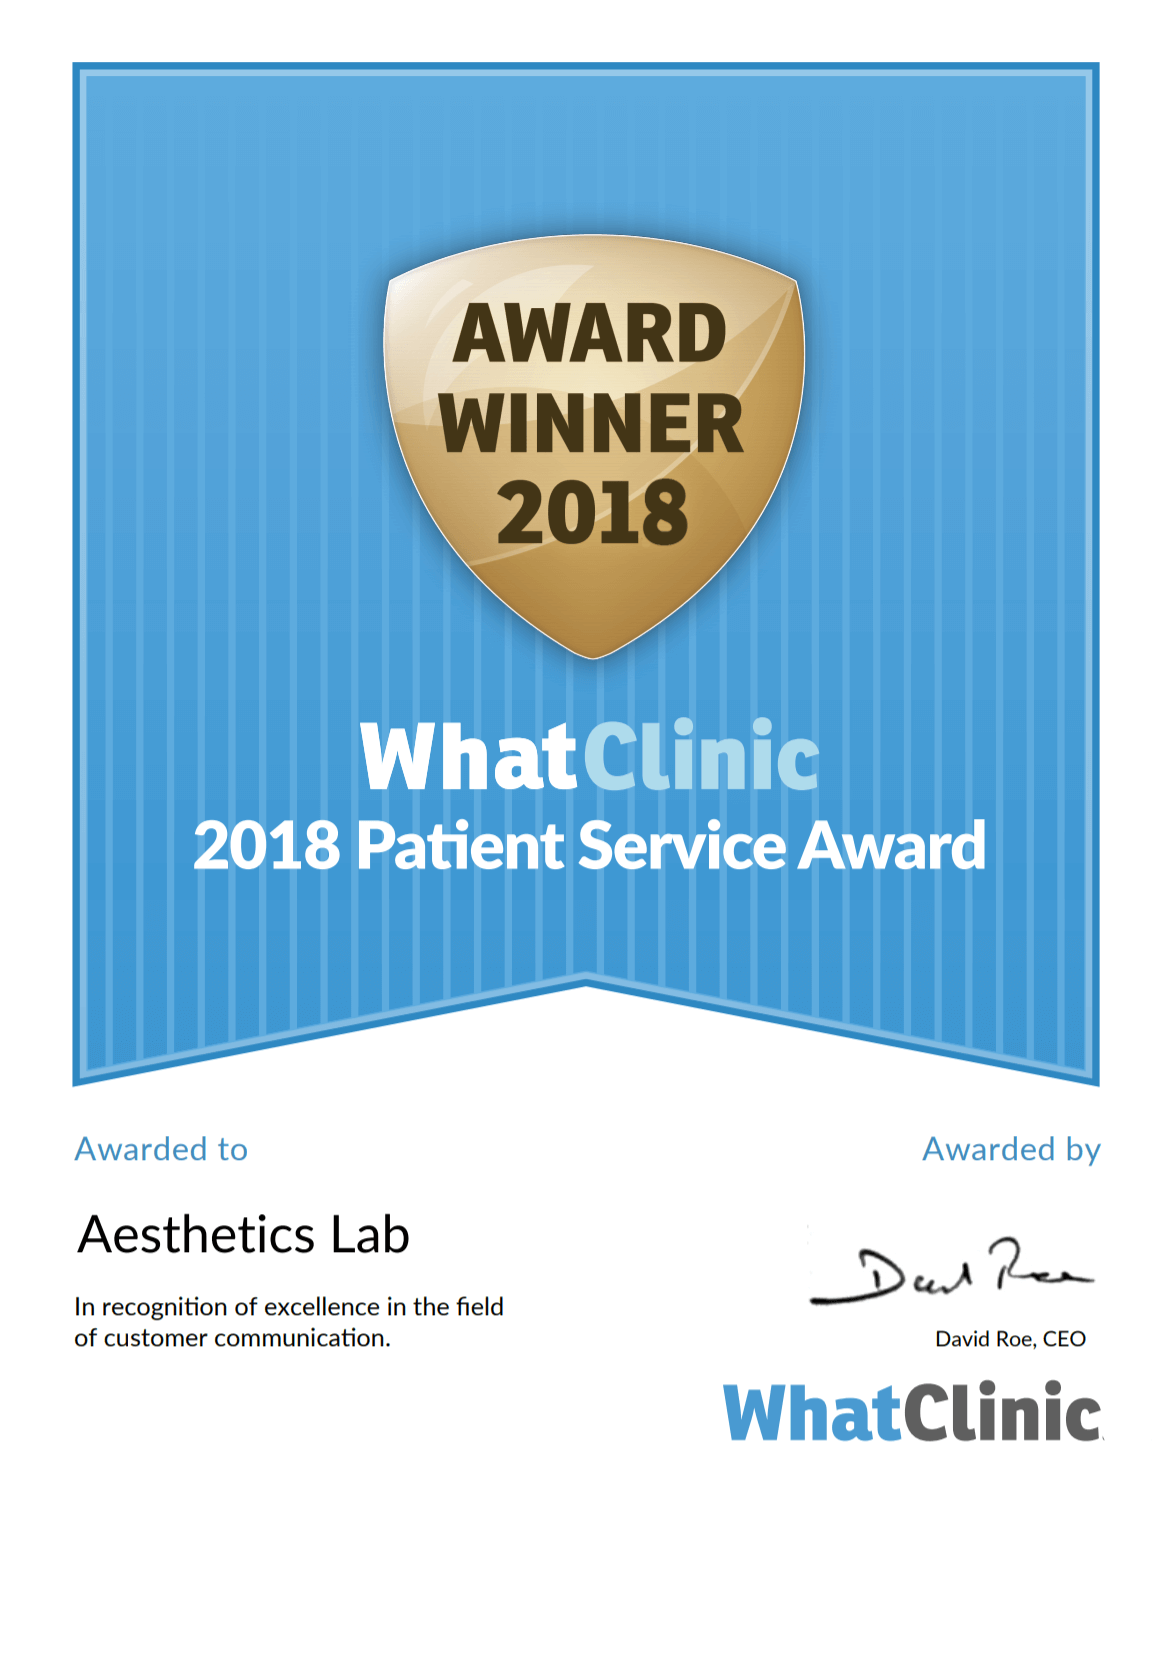 WHAT CLINIC SERVICE AWARD 2018 - WINNER